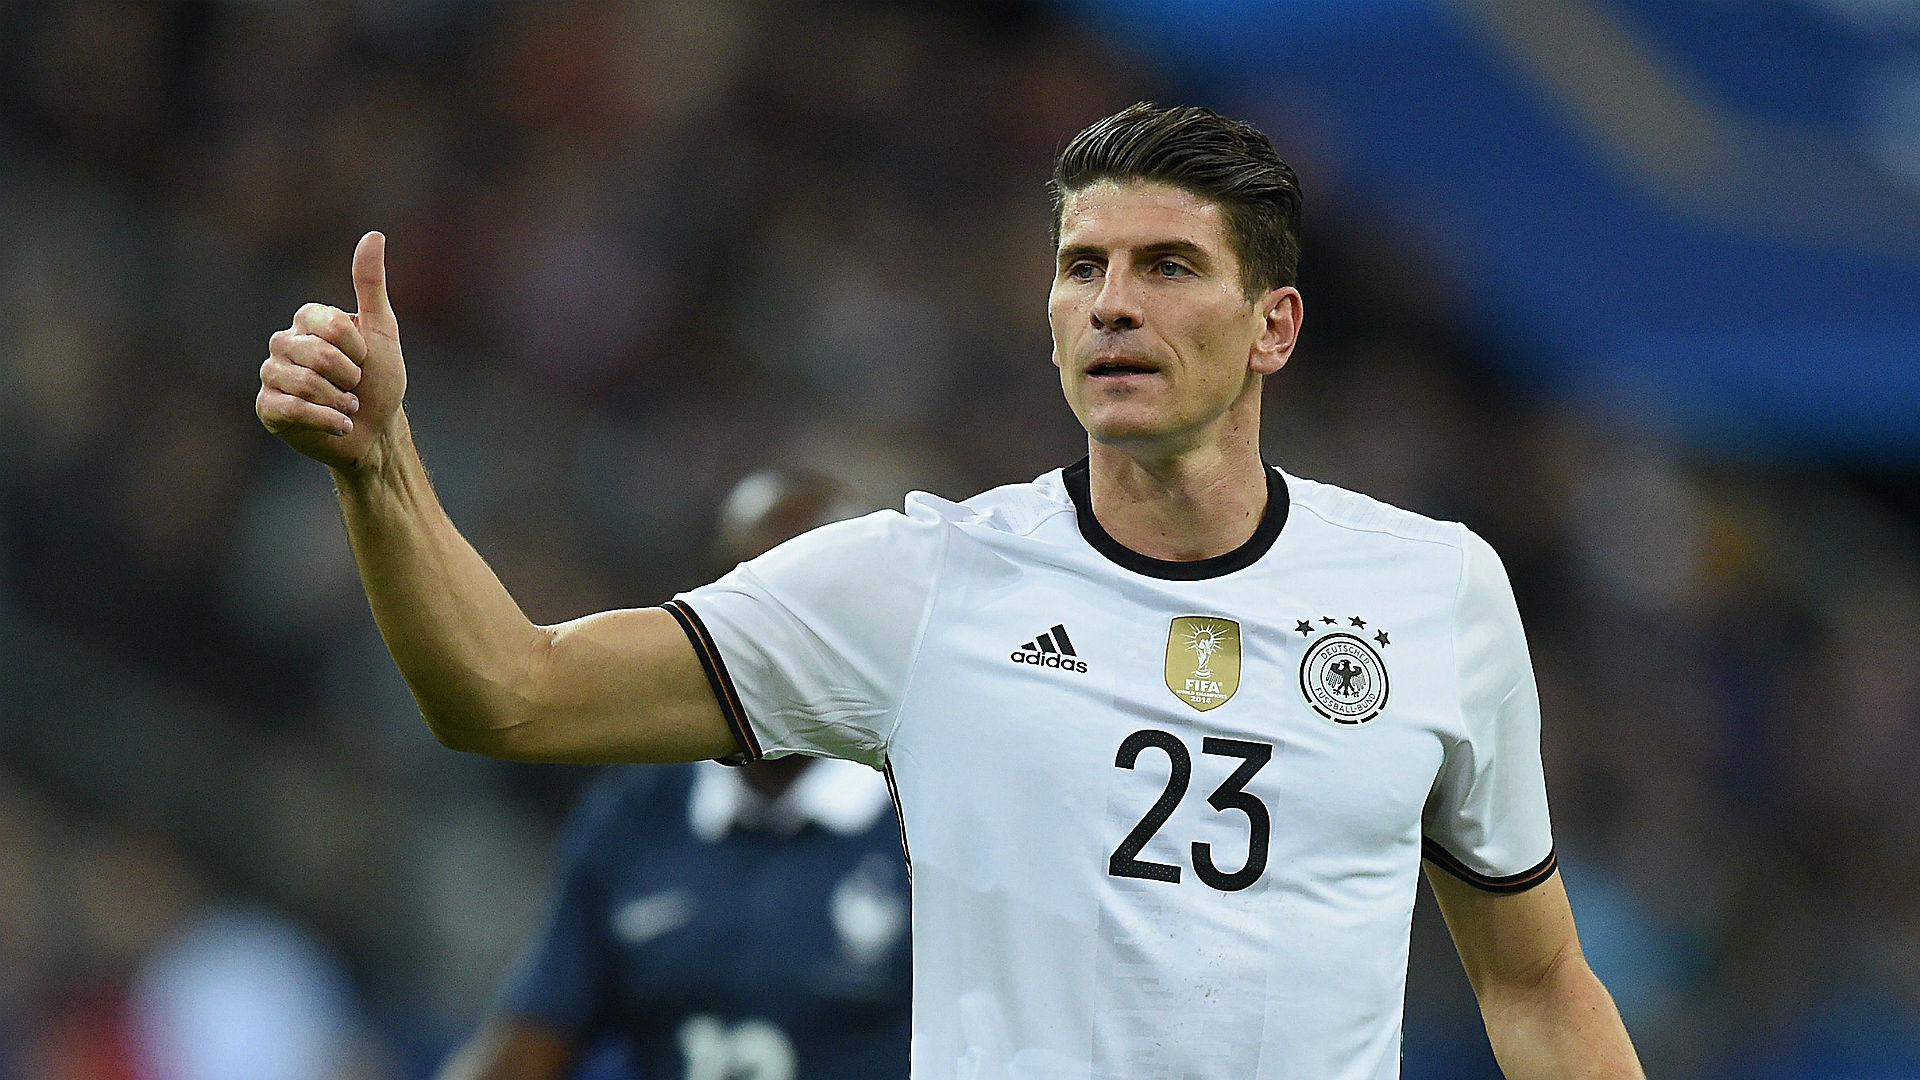 Euro 2016 odds – Germany, France top board before draw